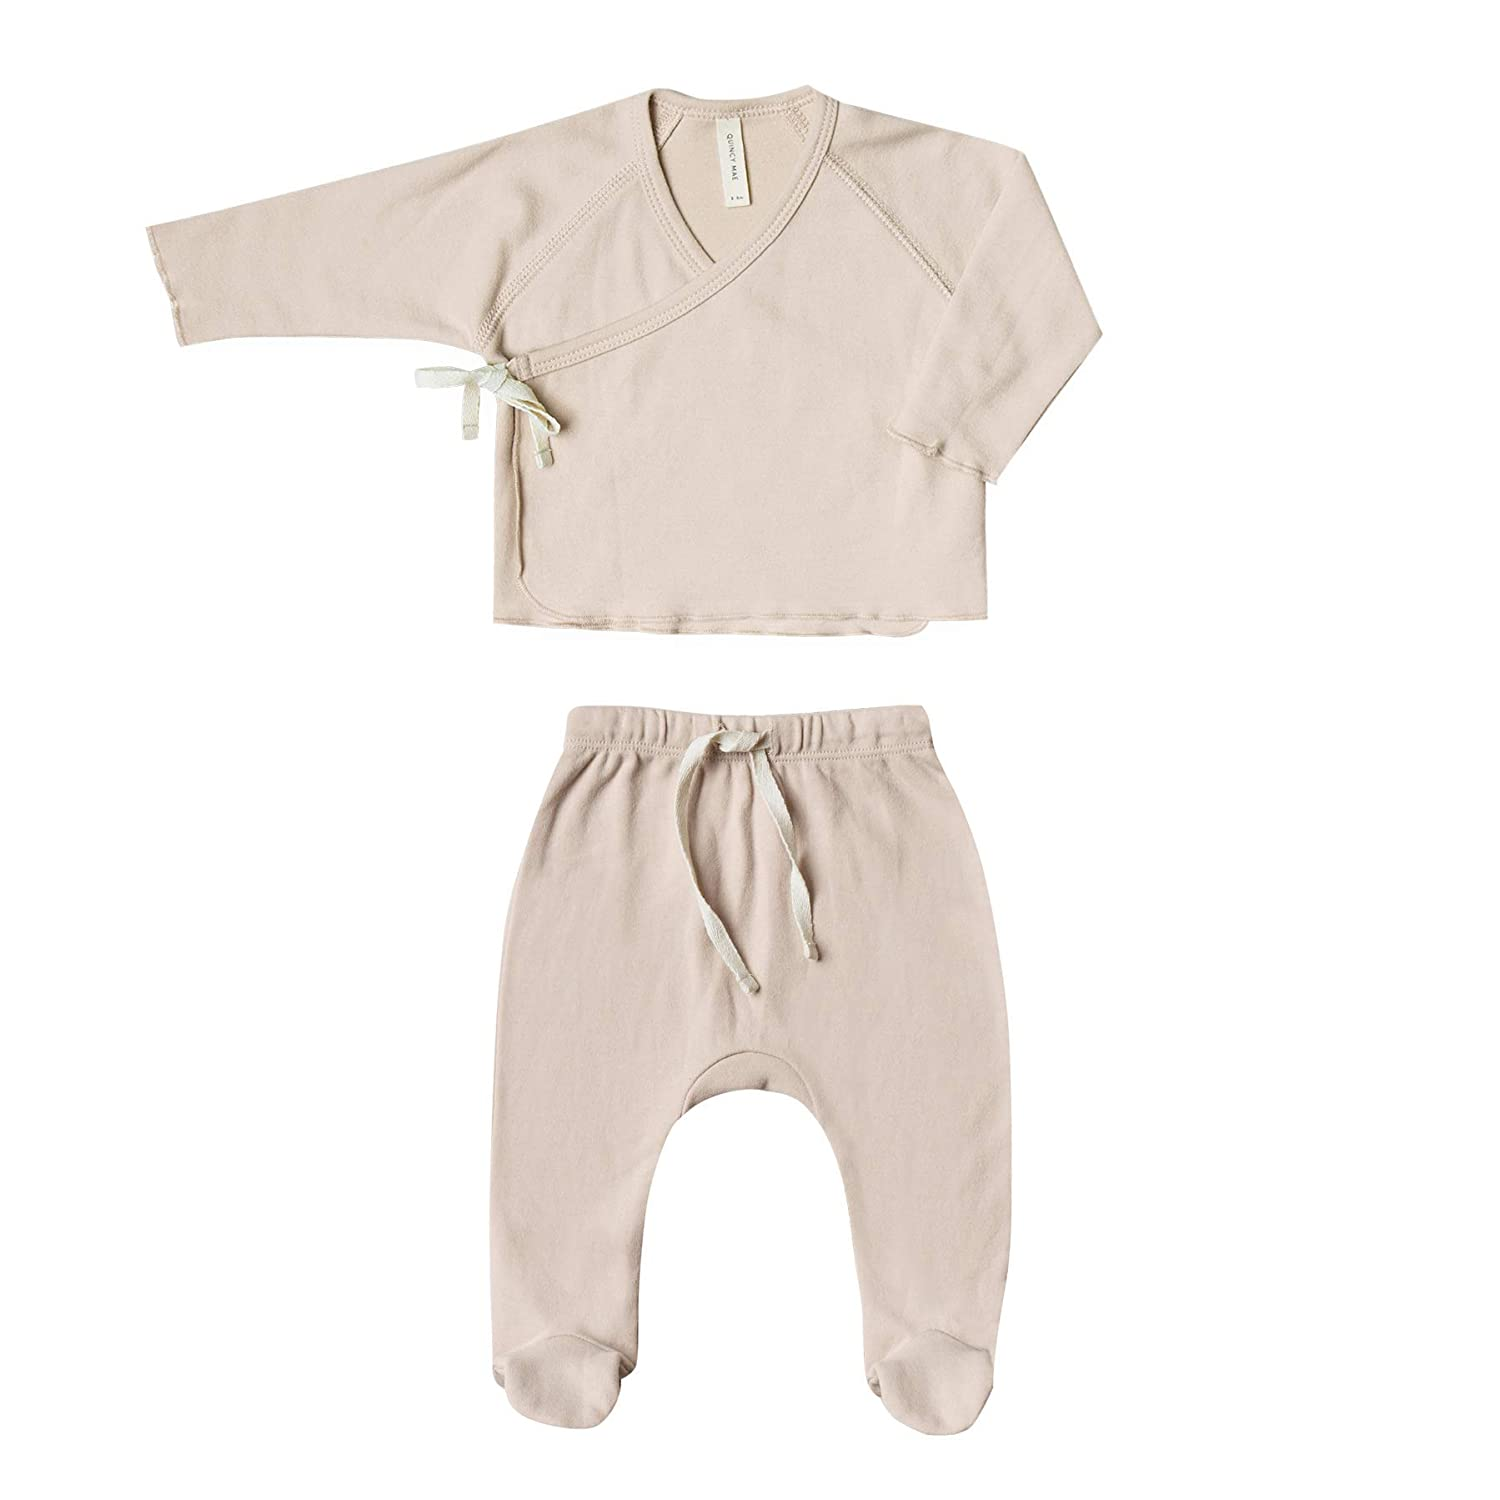 Quincy Mae Rose Kimono TOP Footed Pant Set